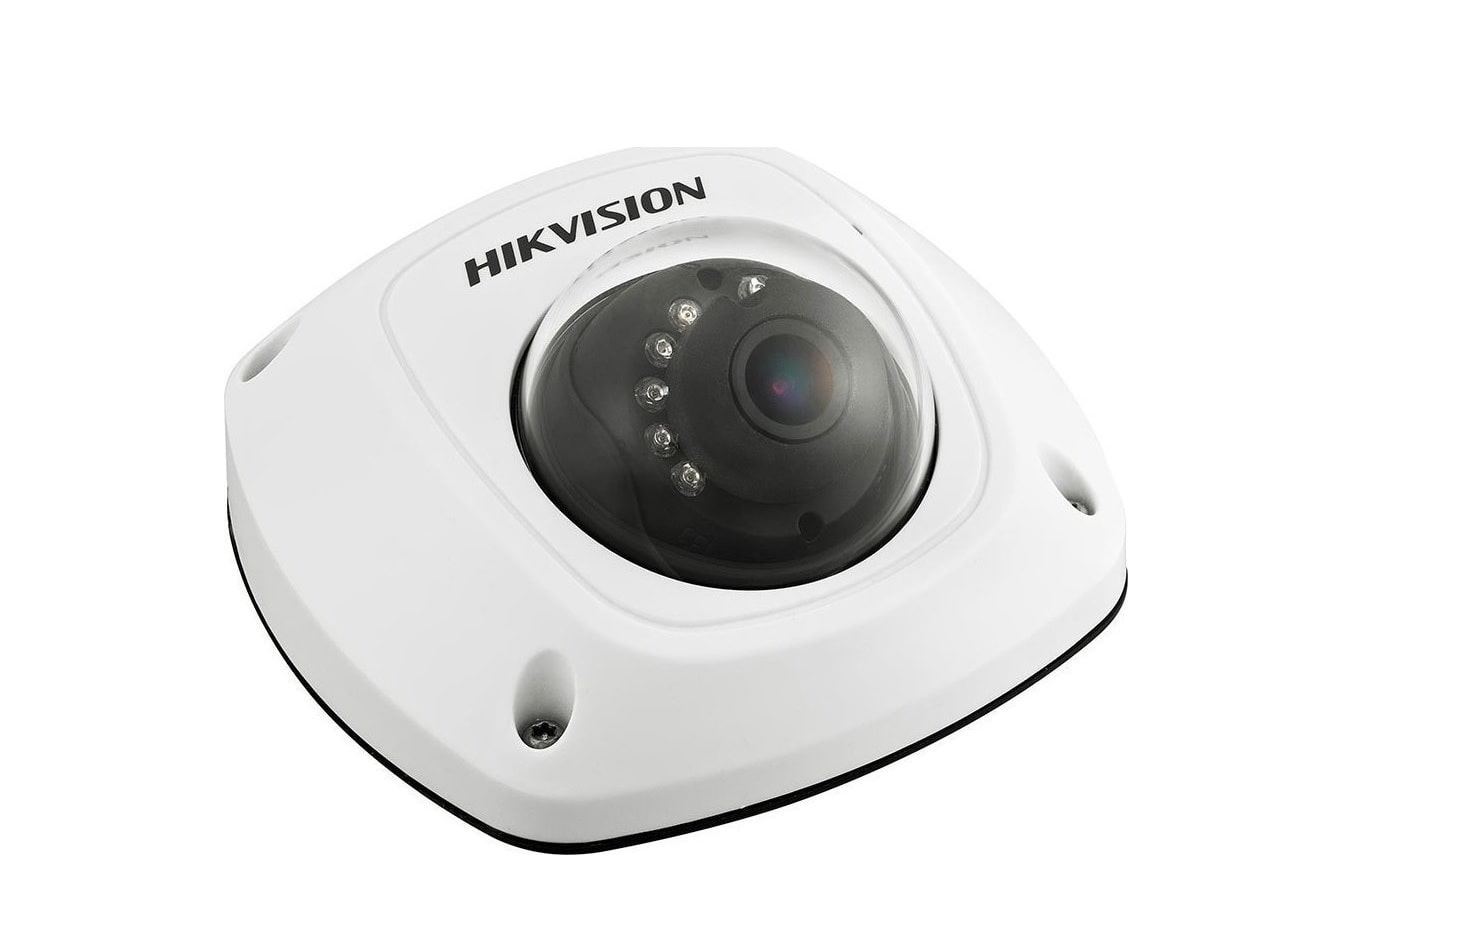 Hikvision DS-2CD2542FWD-IS Δικτυακή Κάμερα 4MP Φακός 2.8mm